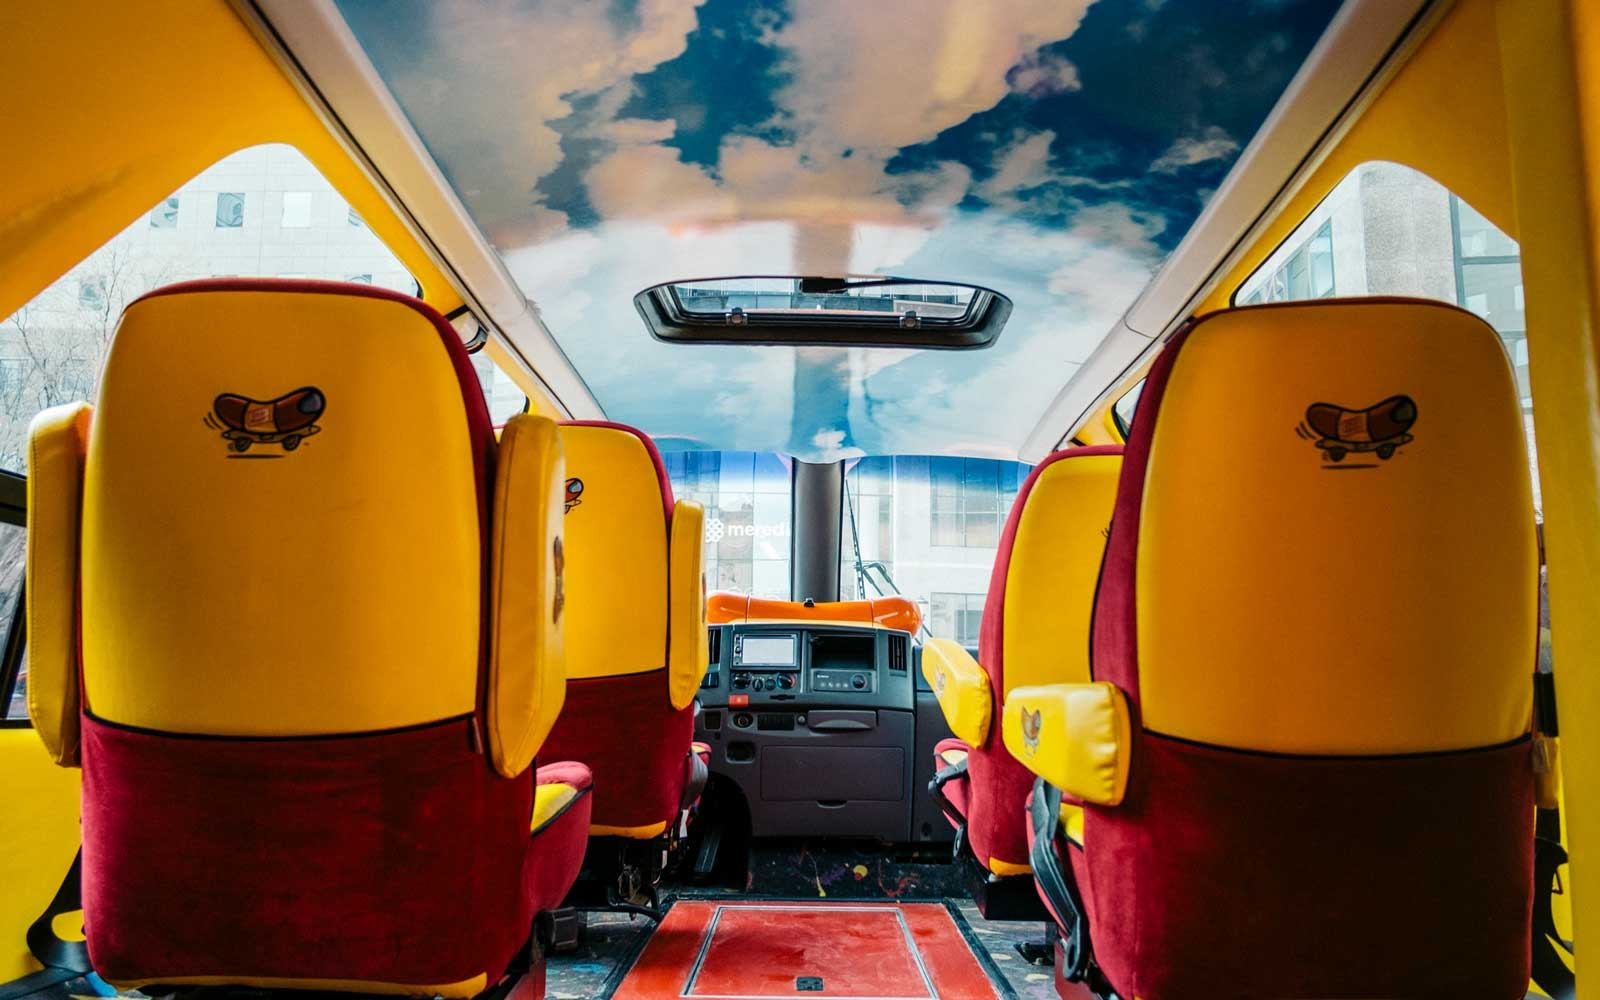 A Look Inside the Oscar Mayer Wienermobile and What It's Like to Drive a 27-foot-long Hot Dog on Wheels